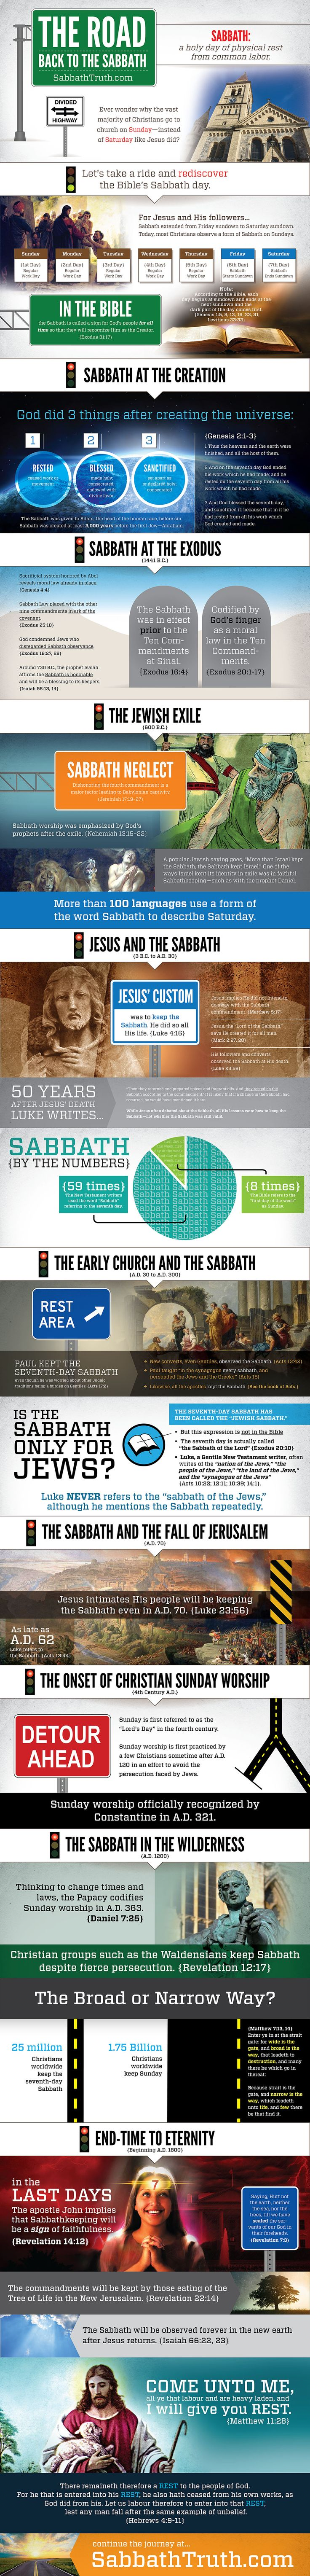 "Why do Christians go to church on Sunday instead of Saturday, like Jesus did? What would Jesus do today? The ""Road Back to the Sabbath"" infographic examines intriguing Bible passages and Sabbath history to answer these questions and more. It's all designed to get you thinking more deeply about a Bible subject that you might just be taking for granted ..."